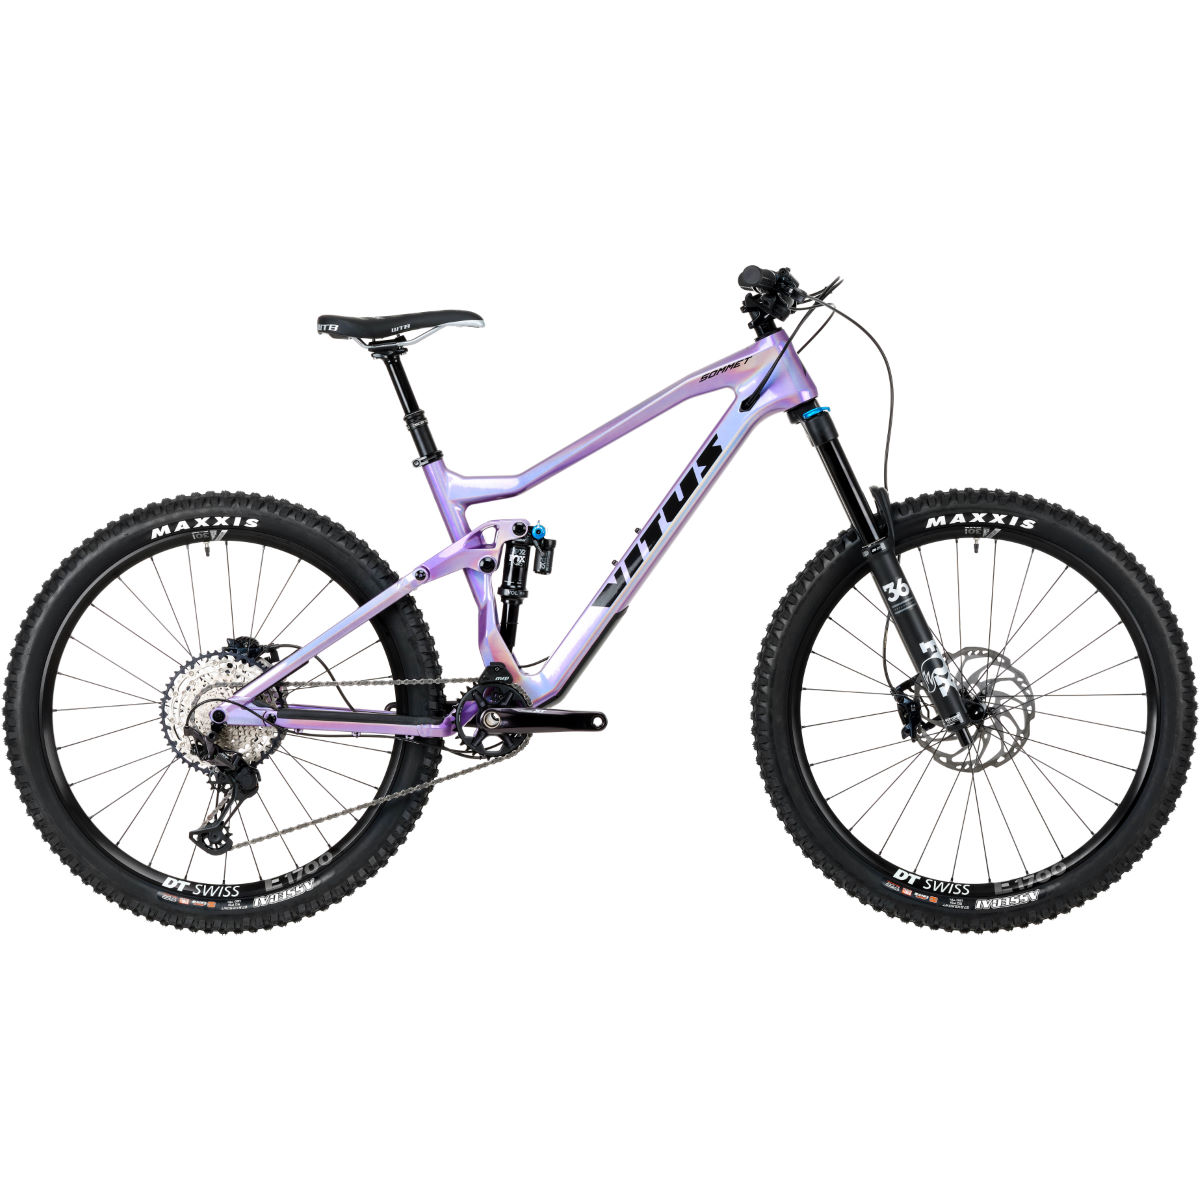 Vitus Vitus Sommet 27 CRS Bike (XT/SLX 1x12 - 2020)   Full Suspension Mountain Bikes